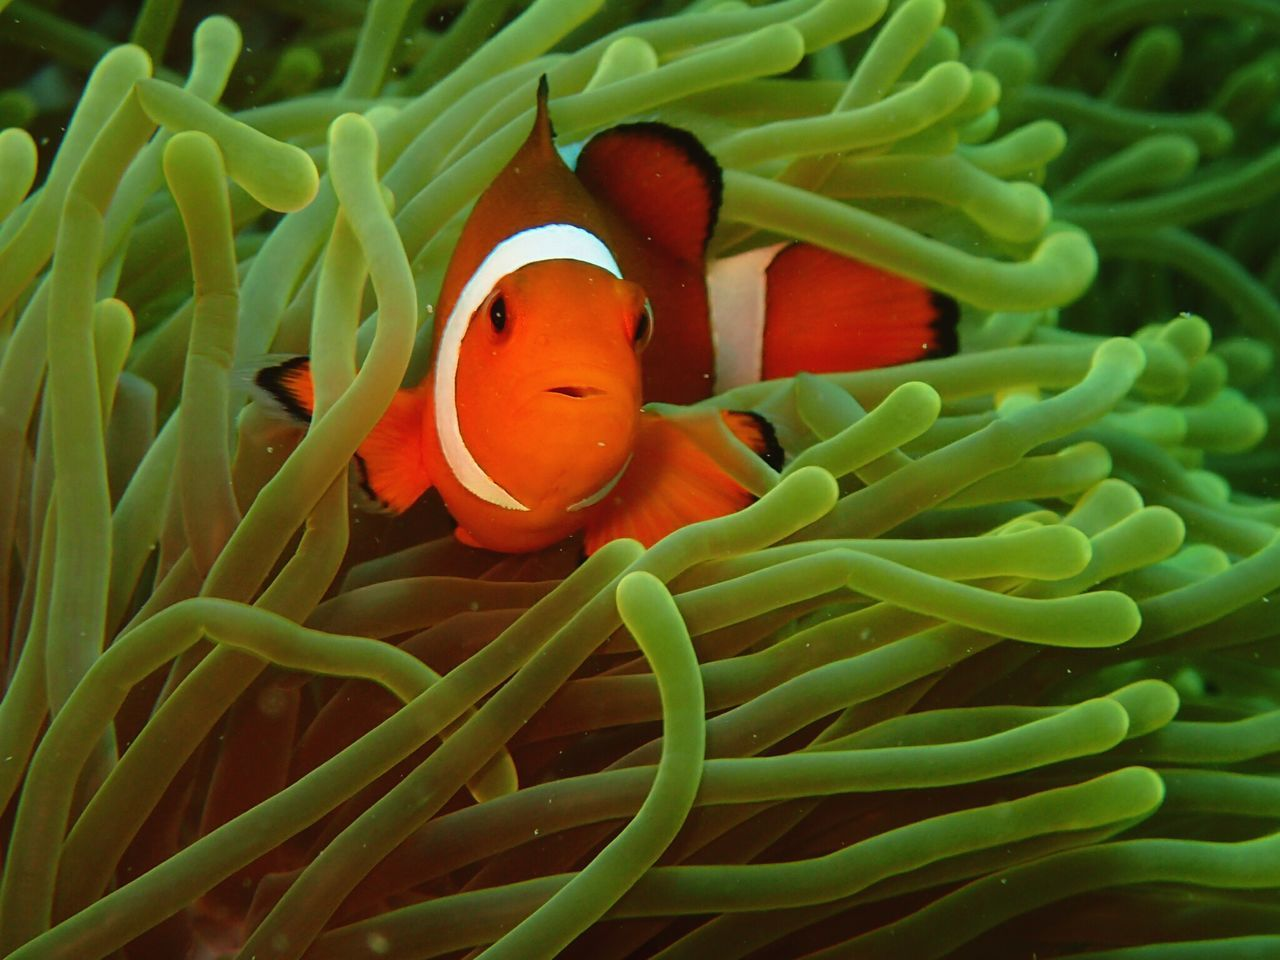 Fish Underwater Sea Life Clown Fish Nature UnderSea Sea Anemone Orange Color Coral Beauty In Nature One Animal Sea No People Close-up Water Animal Themes Deepbluesea Dive Deepsea Divestreetphotography Nemo Clownfish Nemo Fish Underthesea Underwater Photography